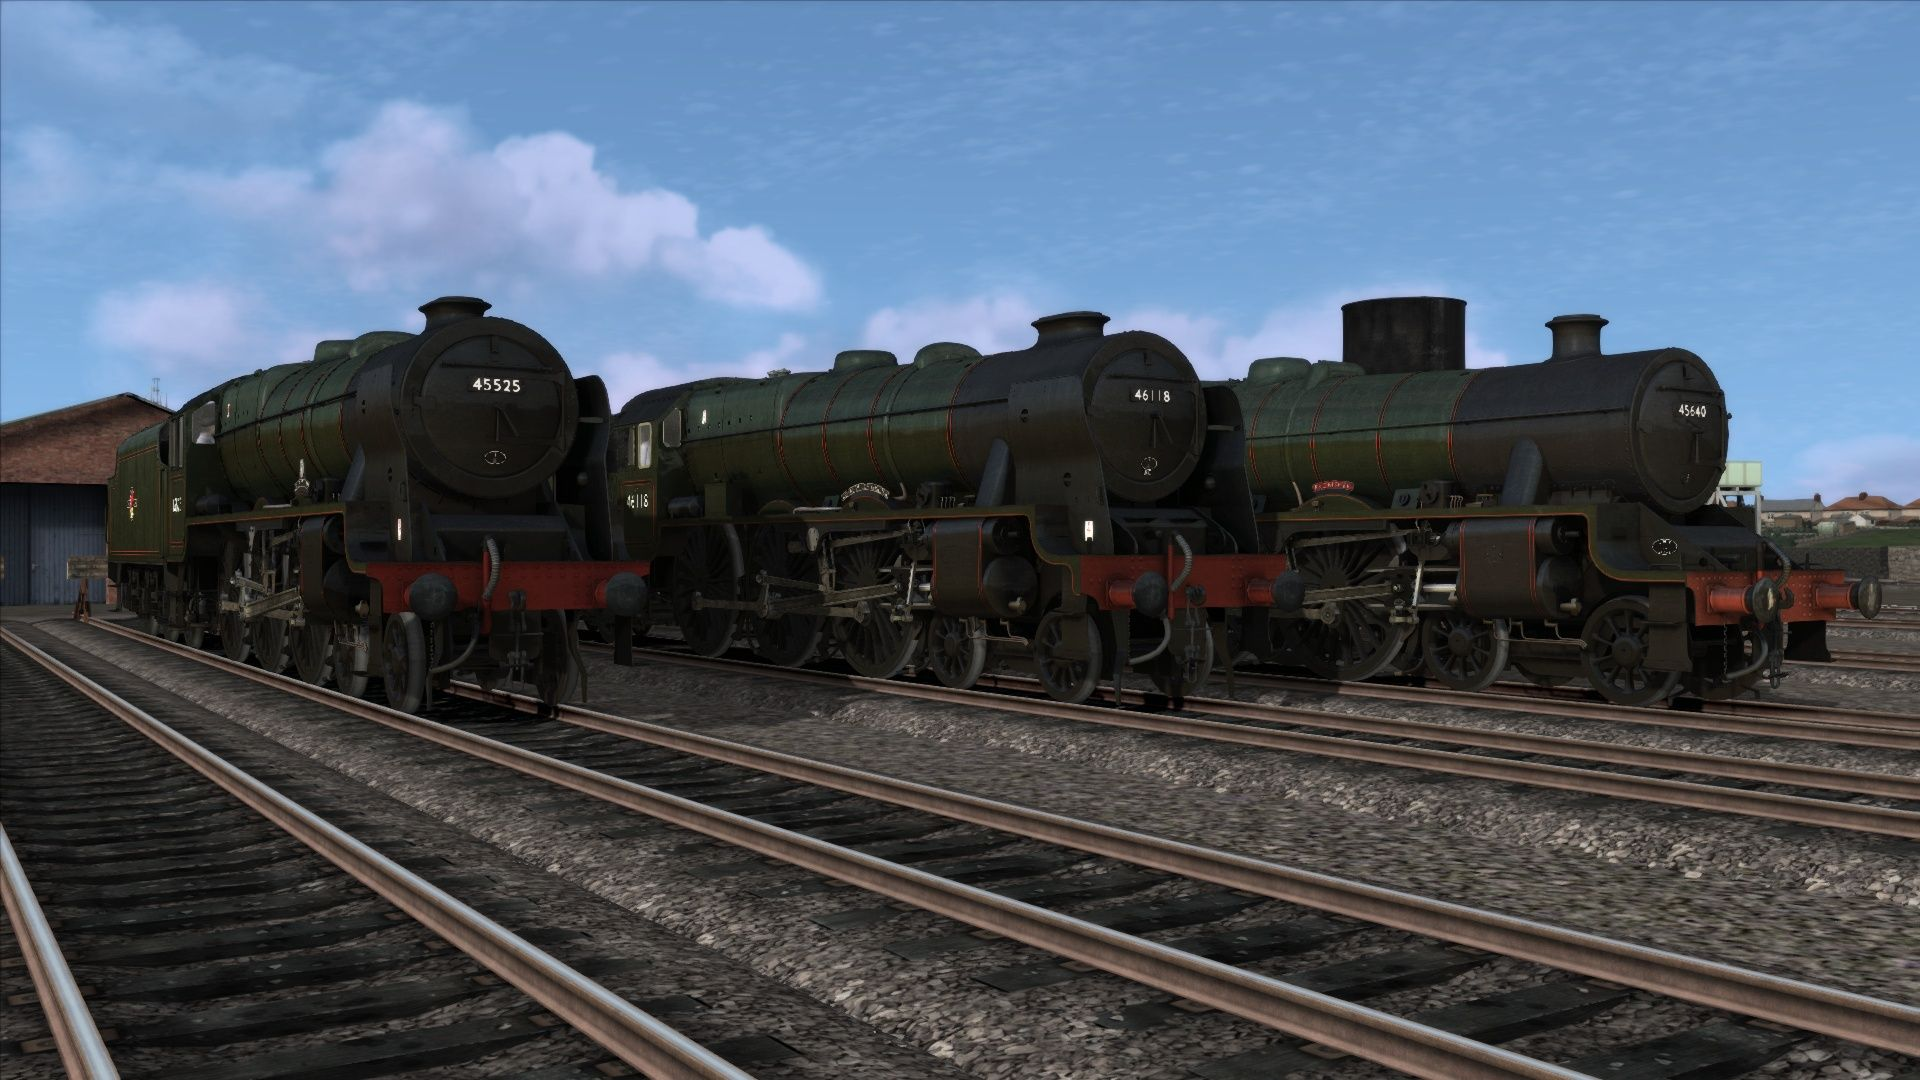 Screenshot_Weardale and Teesdale Rail Network_54.52515--1.54455_19-30-10